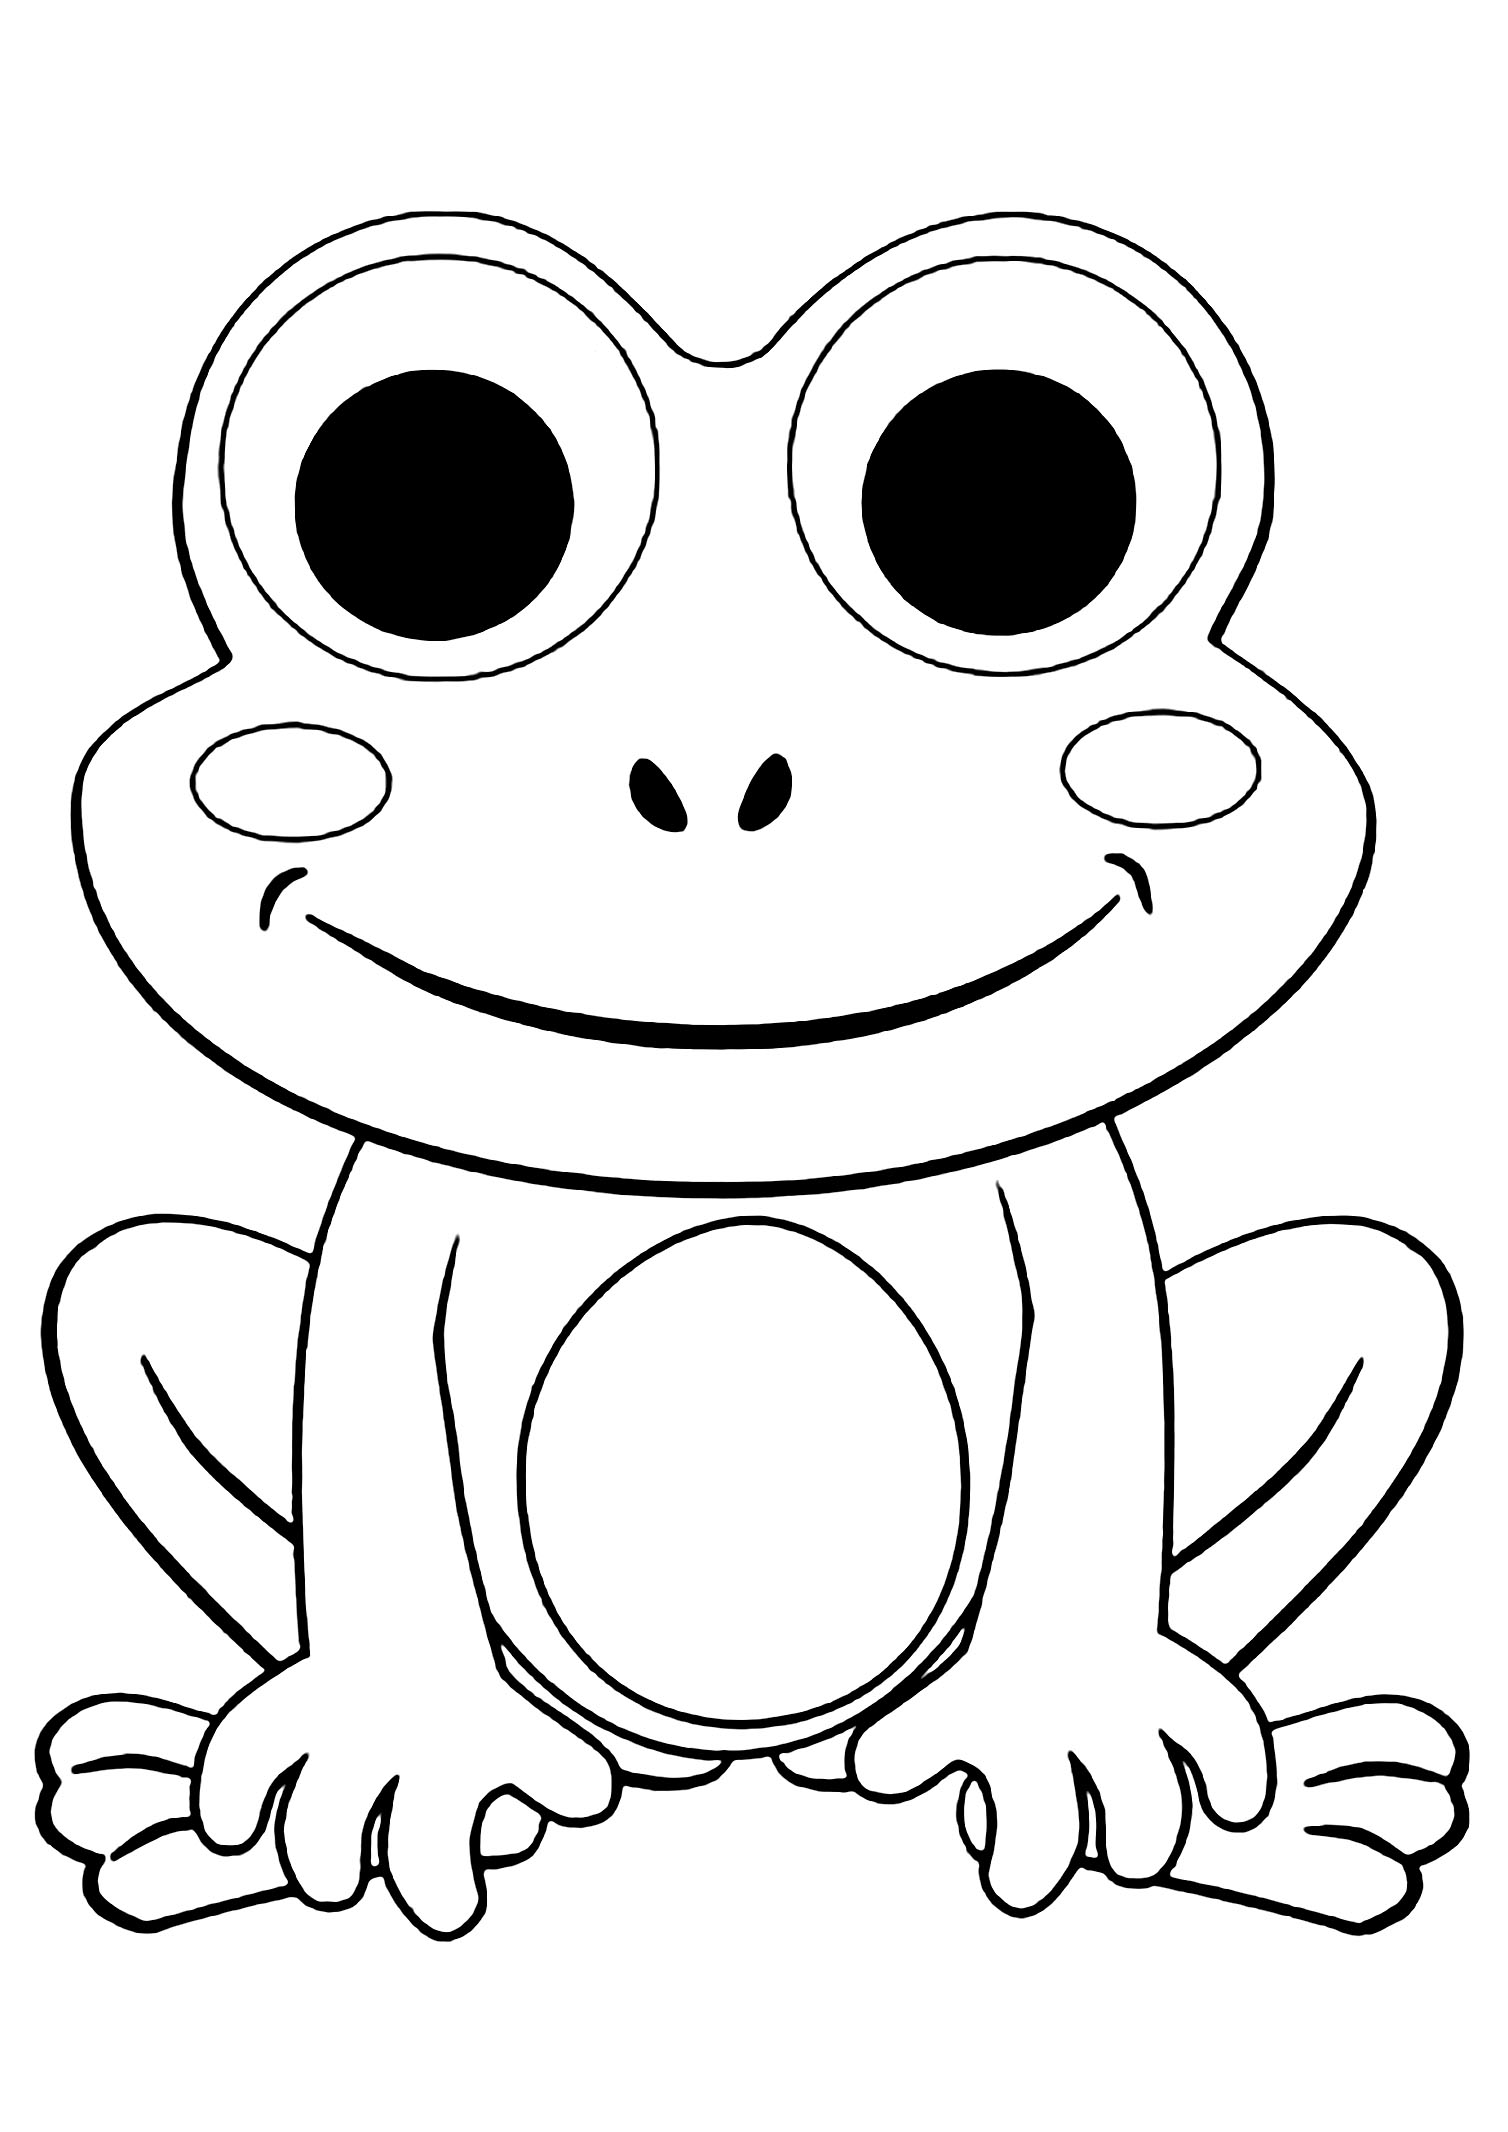 frogs coloring pages free printable frog coloring pages for kids frogs pages coloring